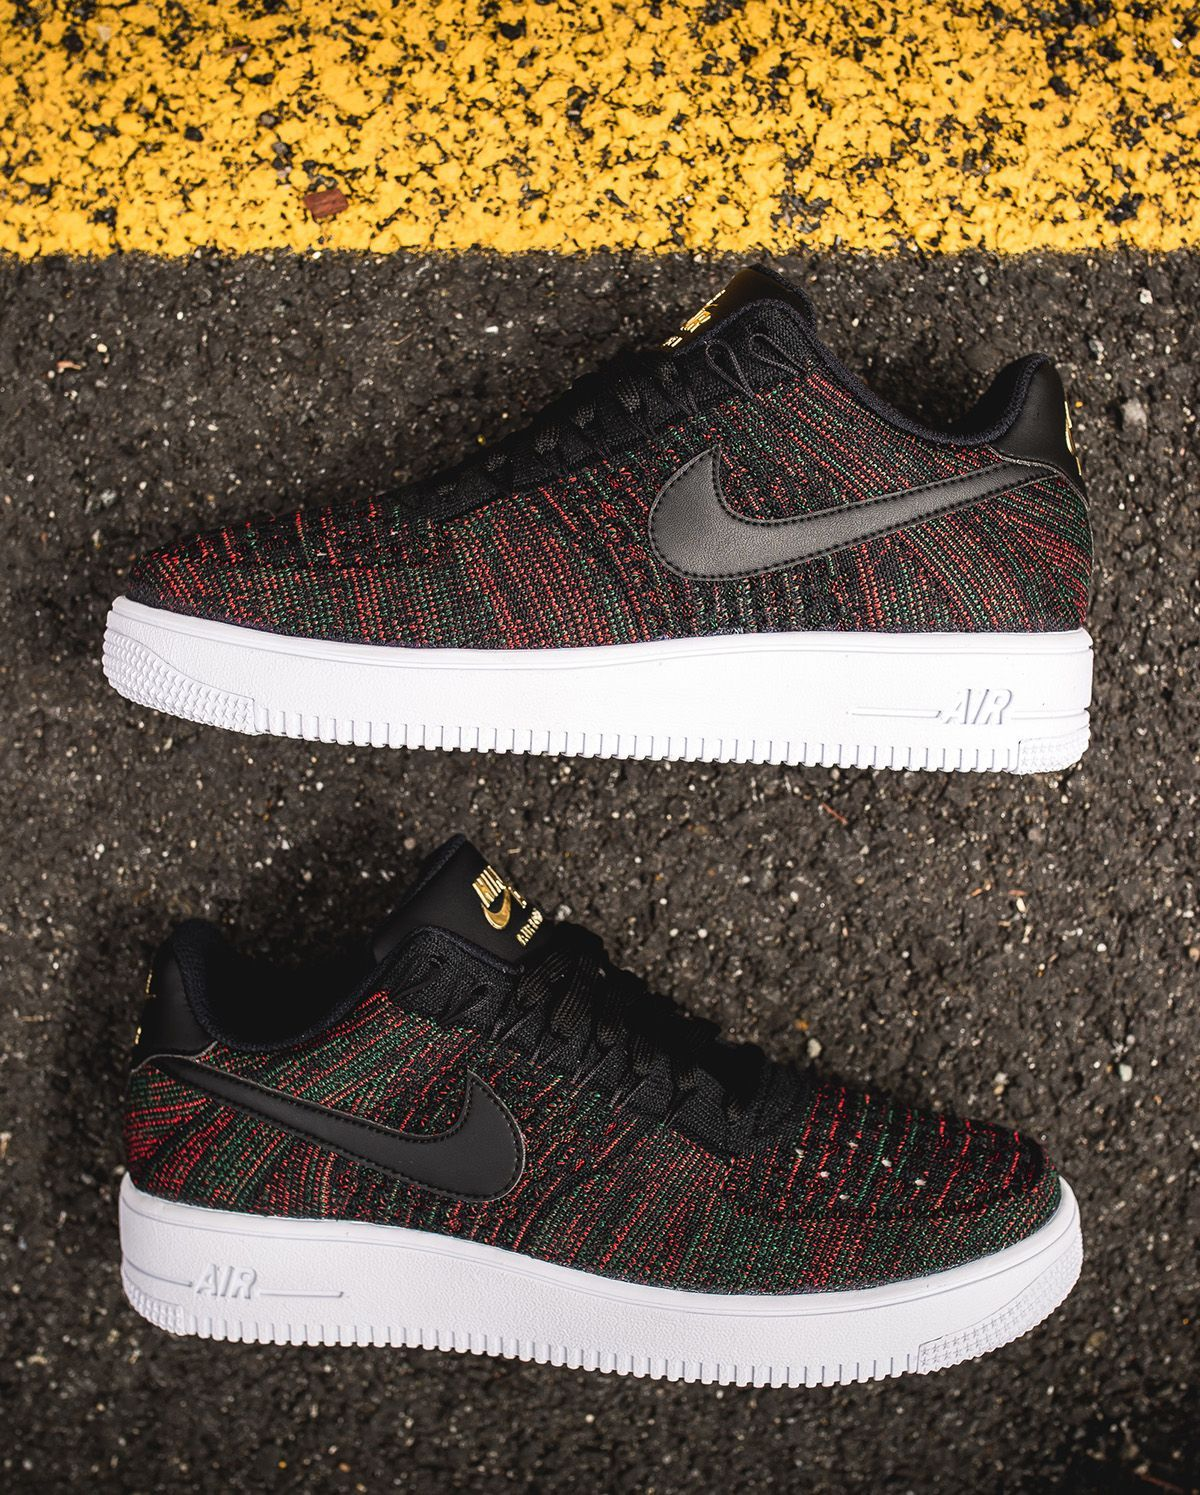 buy popular d0eb0 db17d 2019 的 Nike Air Force 1 Ultra Flyknit Low in Gucci Colors ...